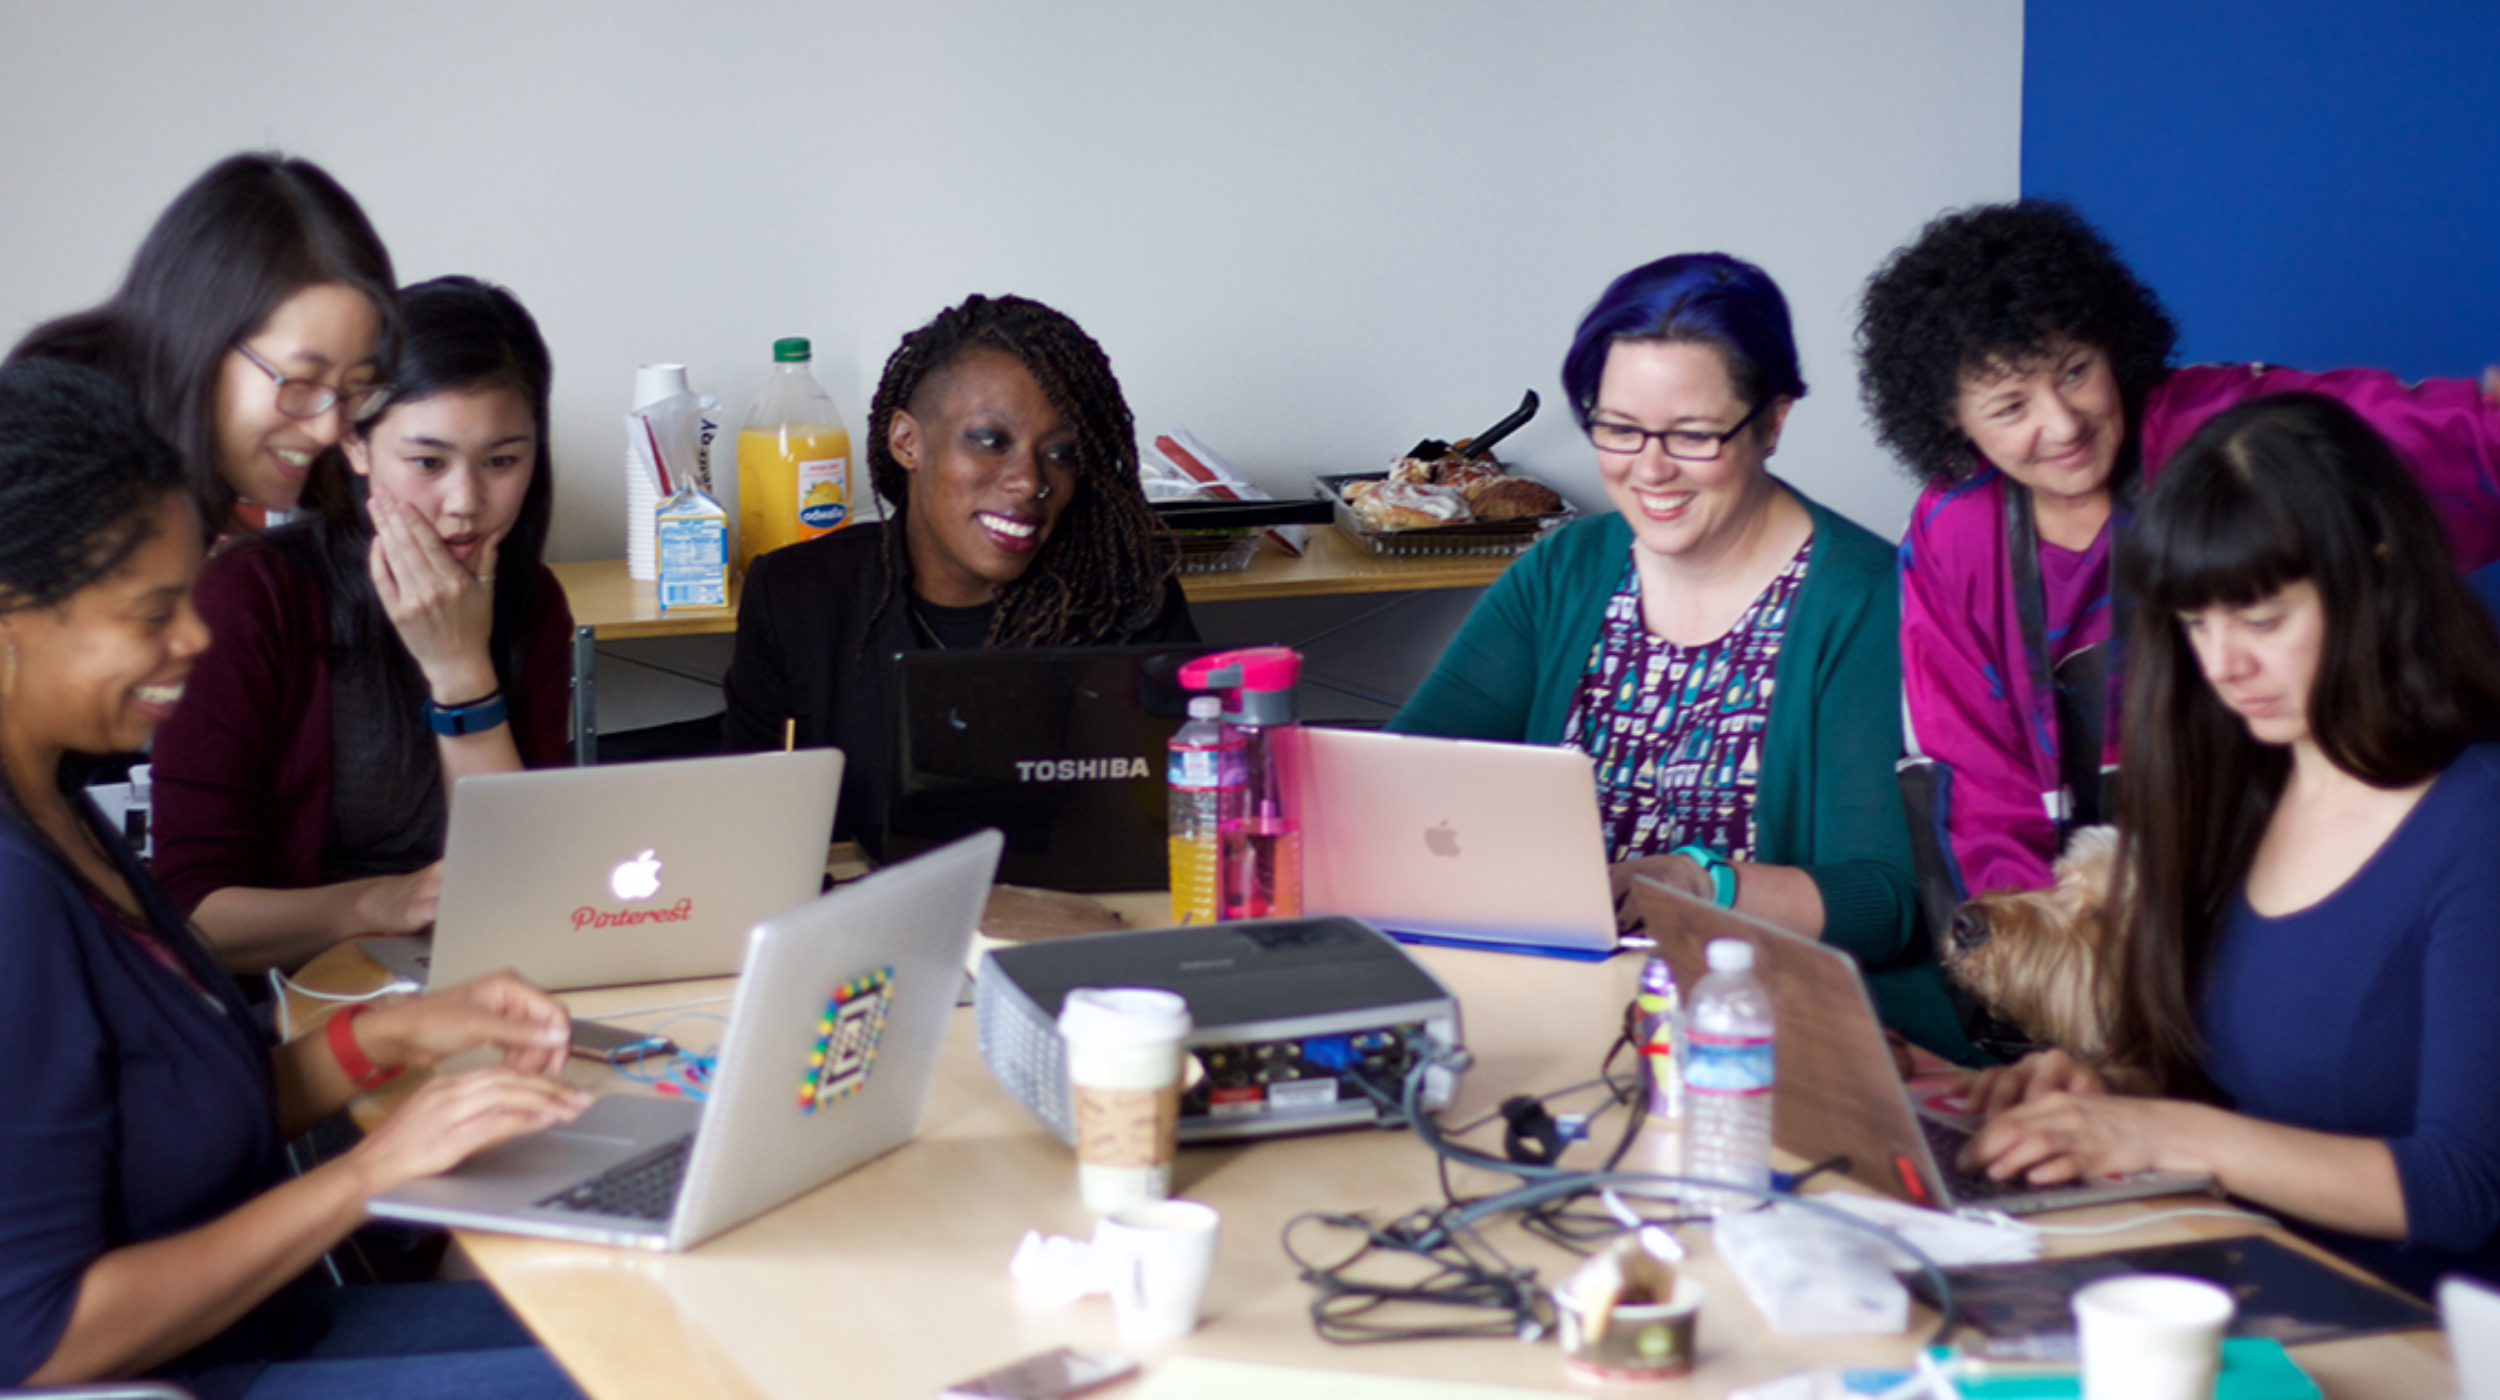 women in tech (image: women sitting at a table on their laptops)